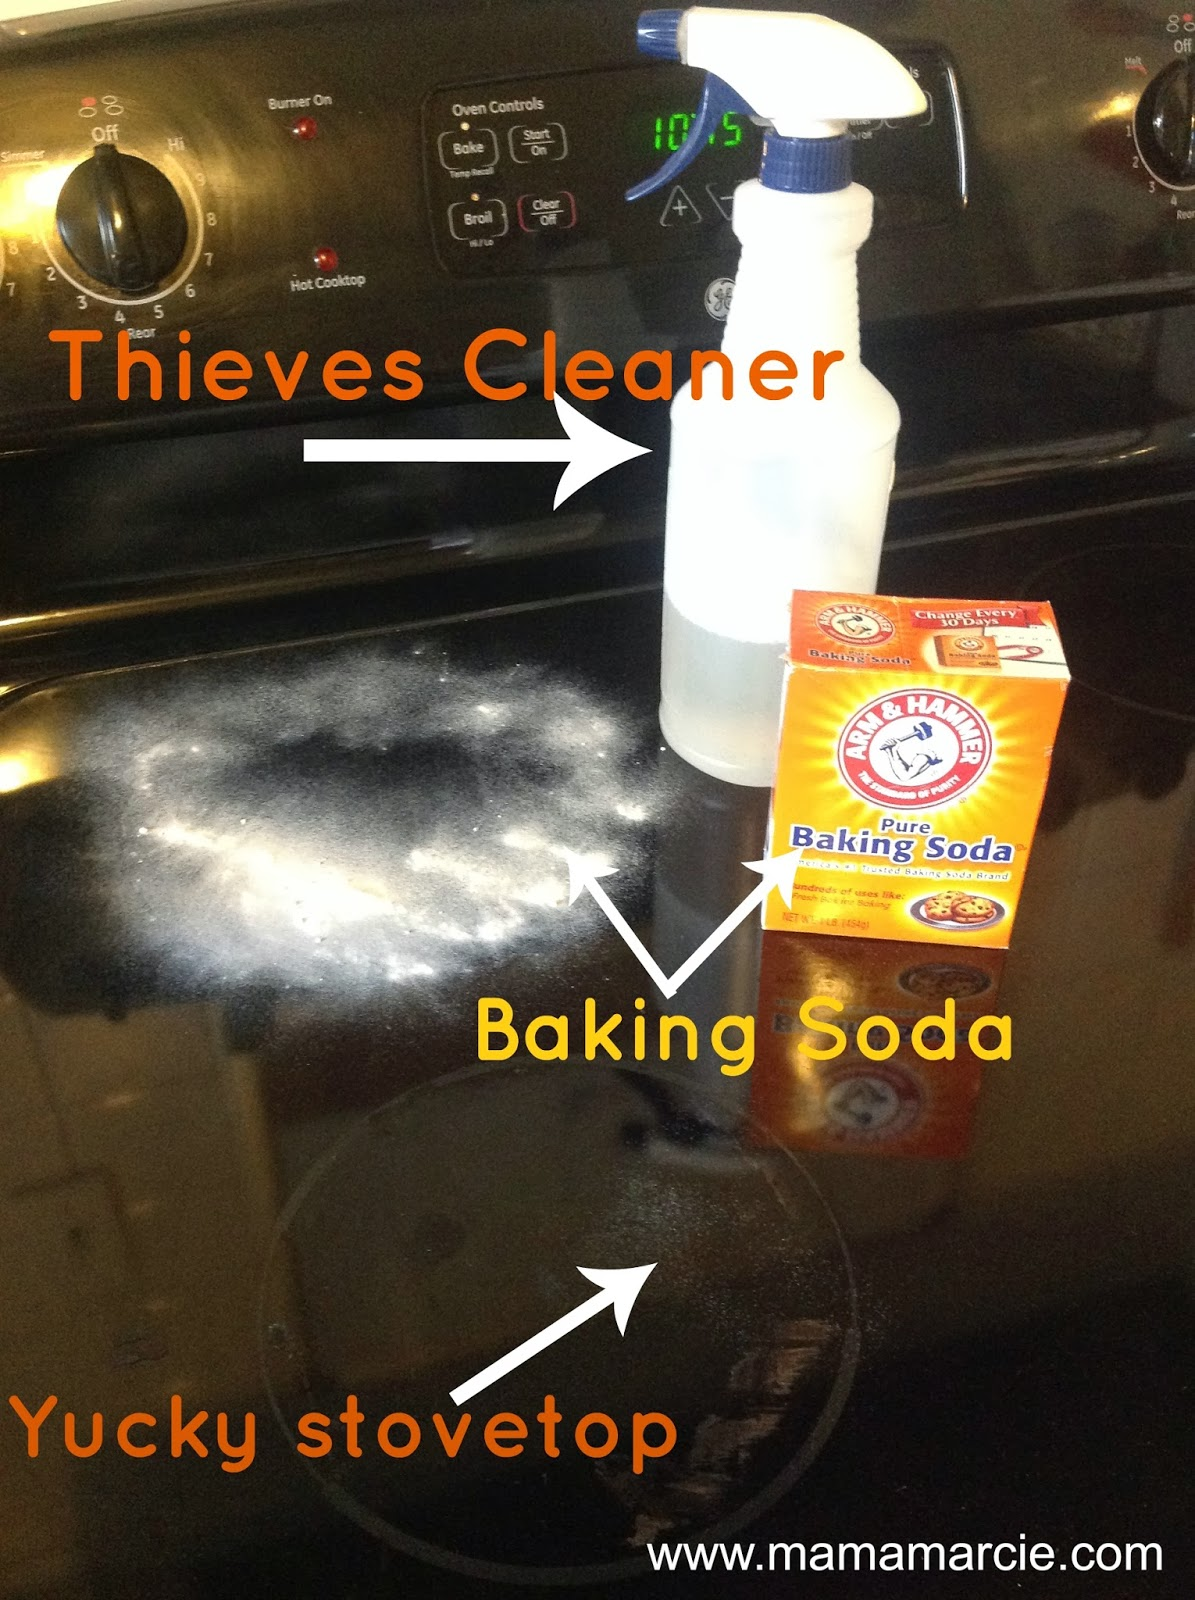 Mama Marcie: Sparkly Clean Kitchen with Thieves Cleaner